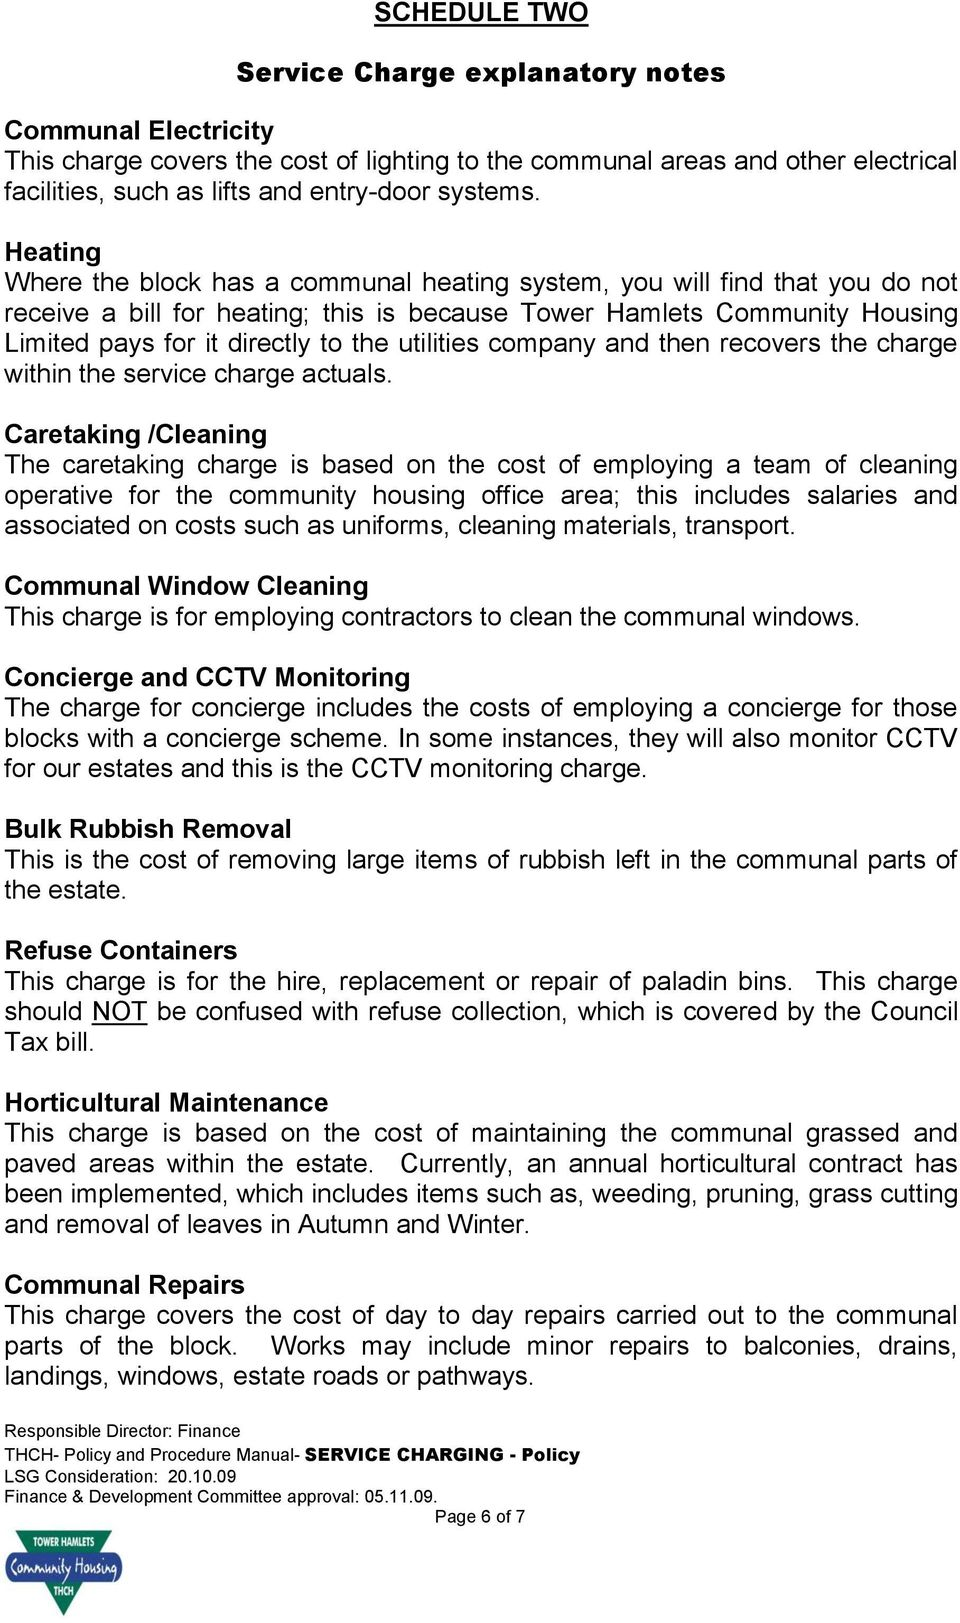 TOWER HAMLETS COMMUNITY HOUSING  SERVICE CHARGING - Policy - PDF